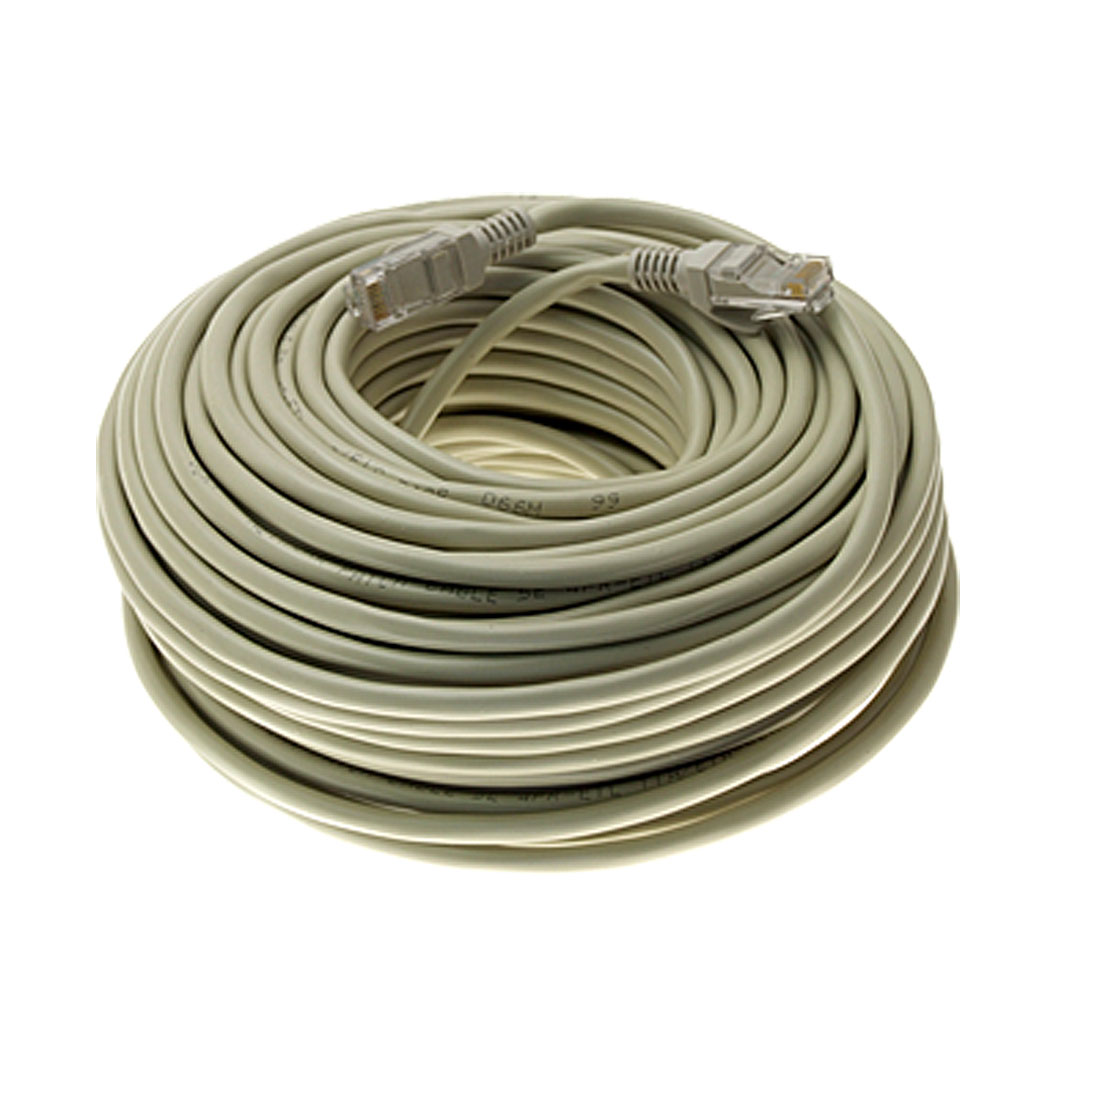 98.4 ft Feet 30M RJ45 CAT5E LAN Network Cable Gray for Ethernet Router Switch